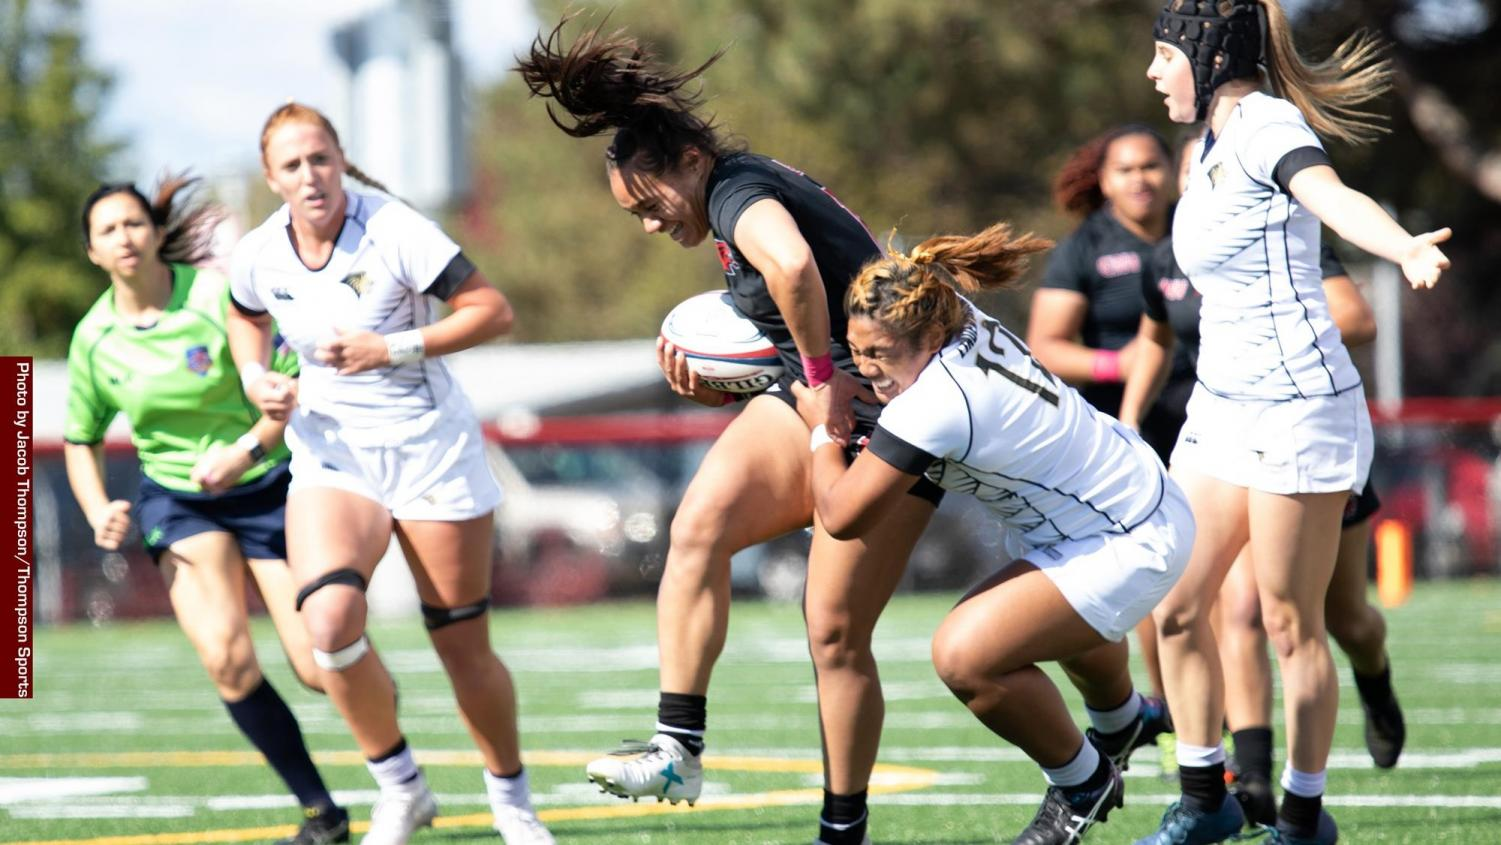 On June 1 CWU will host the women's rugby prospect camp, allowing high school players to test their skills at the collegiate level.